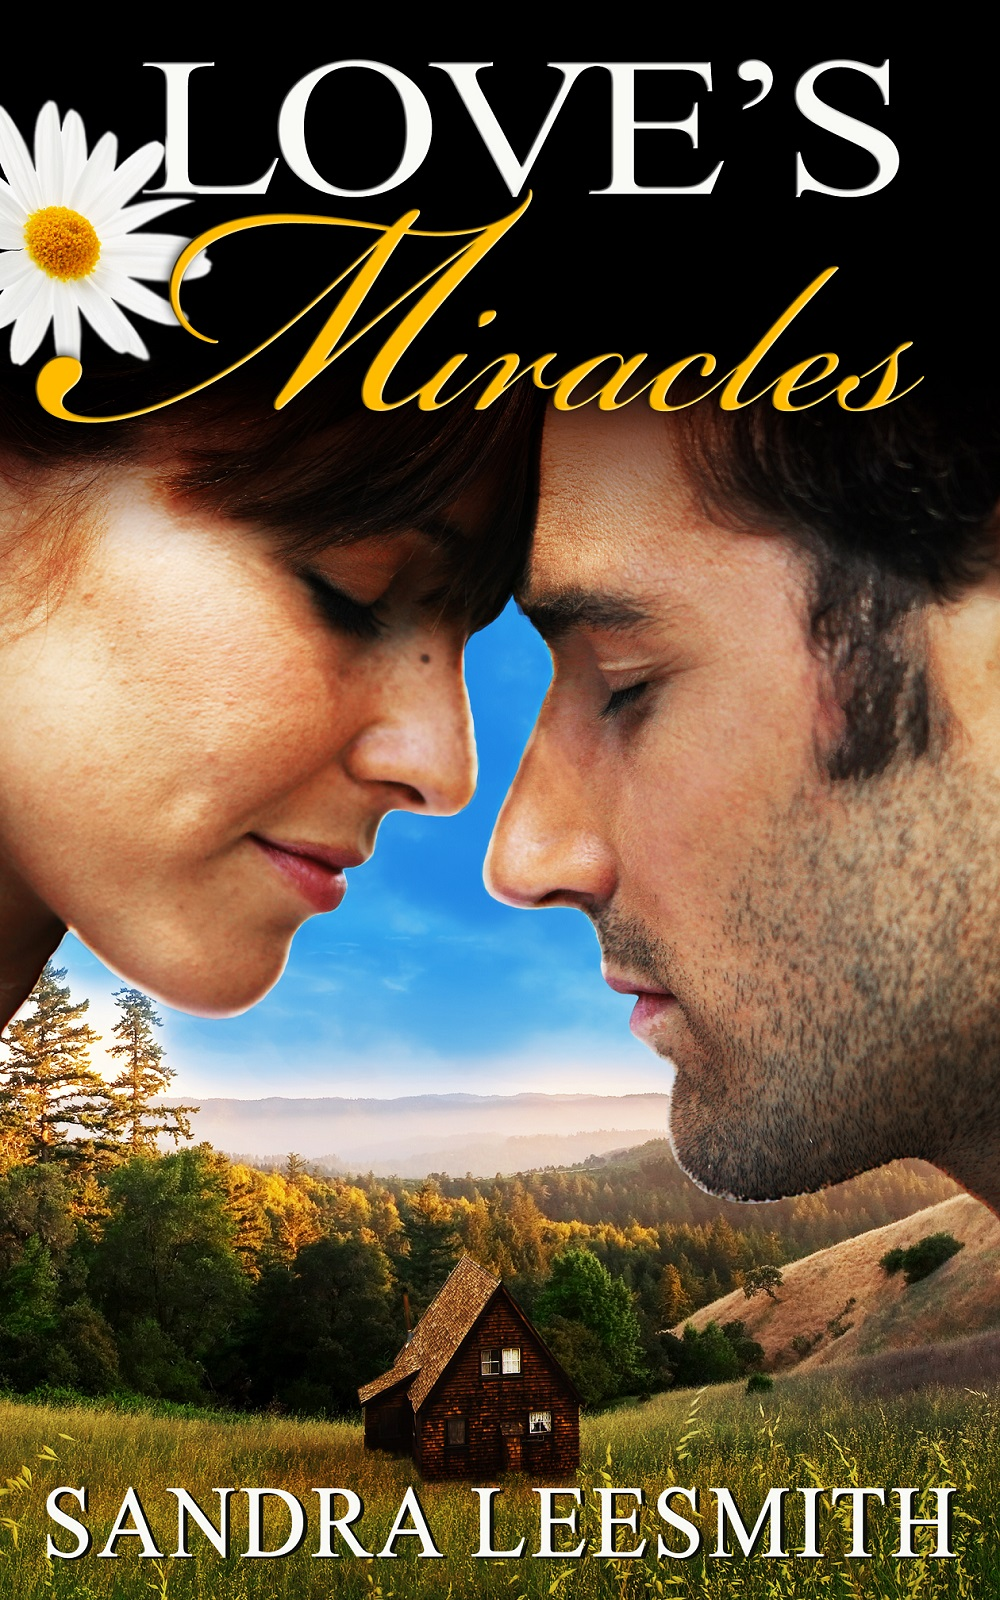 Love's Miracles by Sandra Leesmith